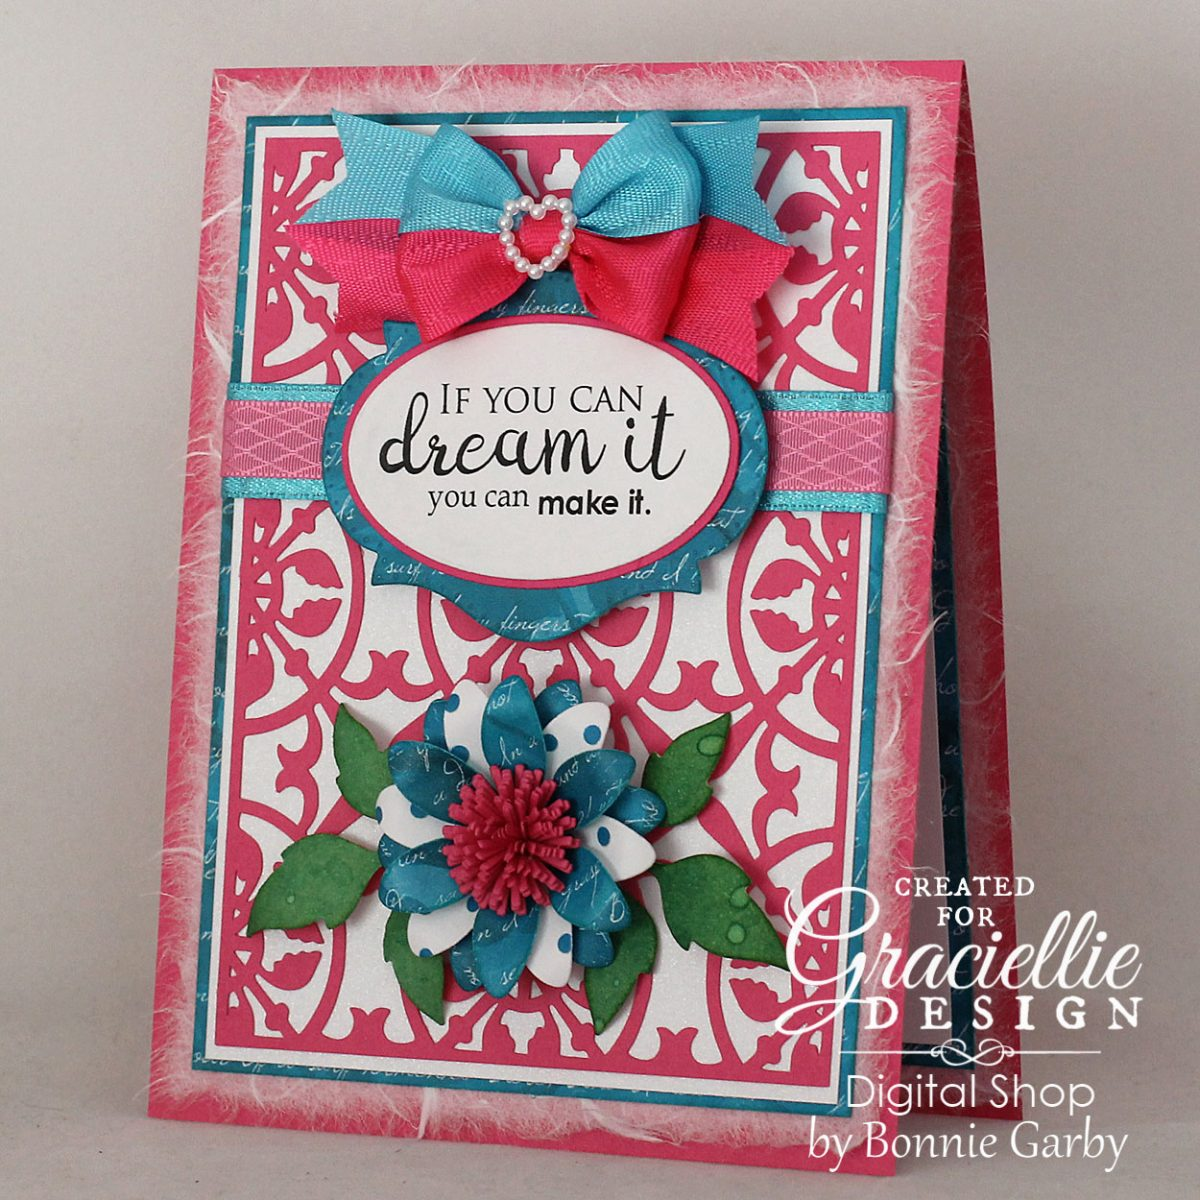 Graciellie Design Inspiration Blog Hop